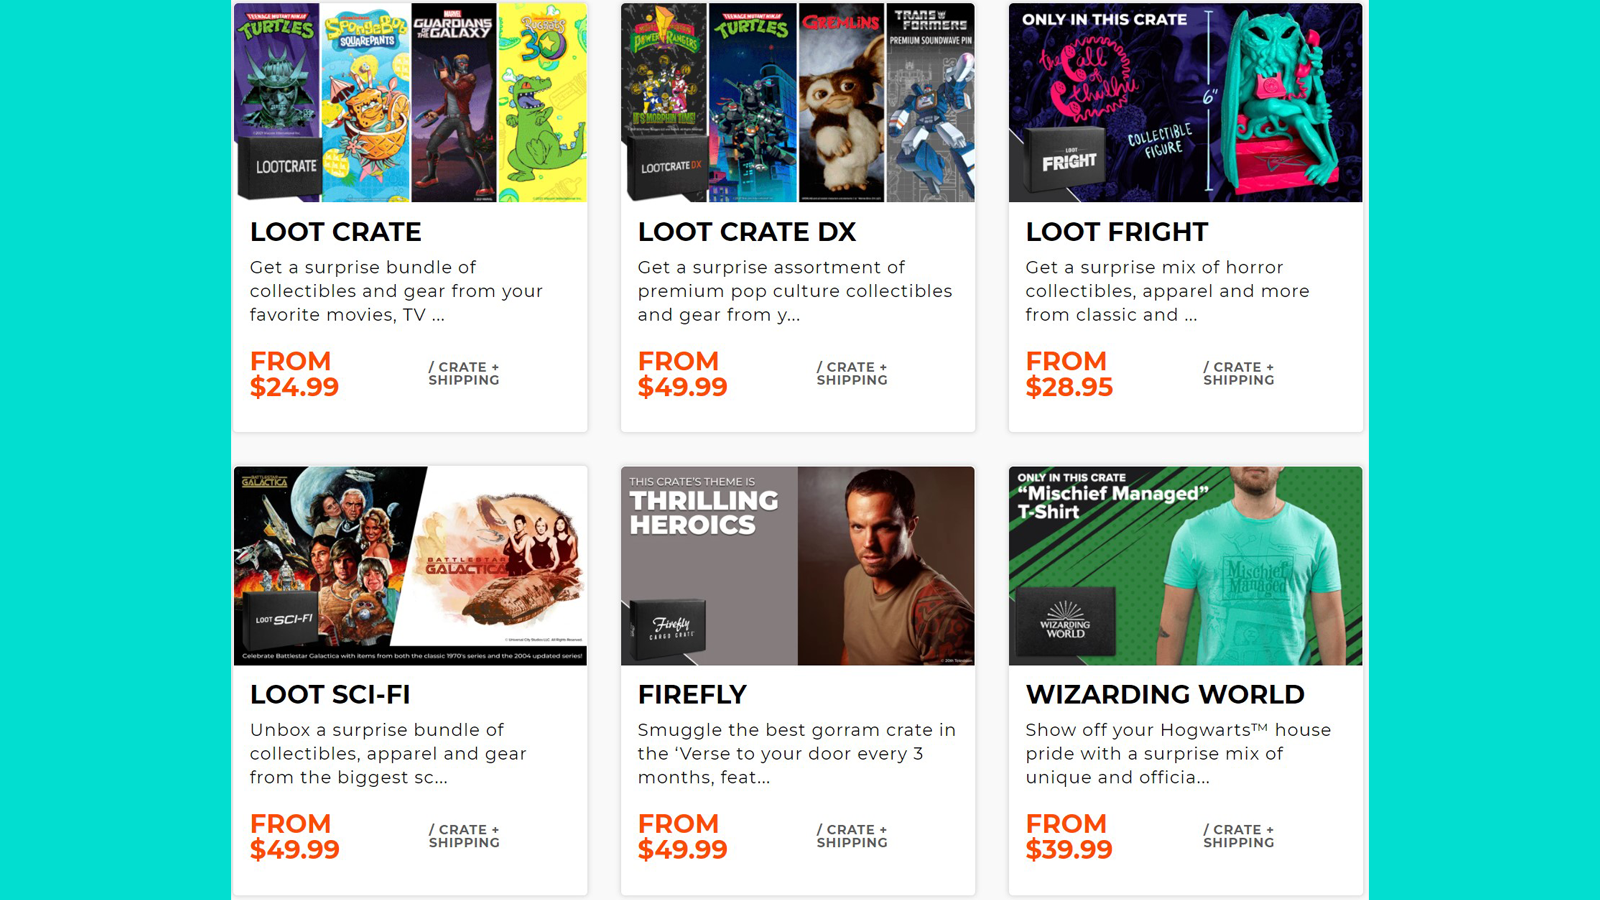 A few of the many monthly box options from Loot Crate